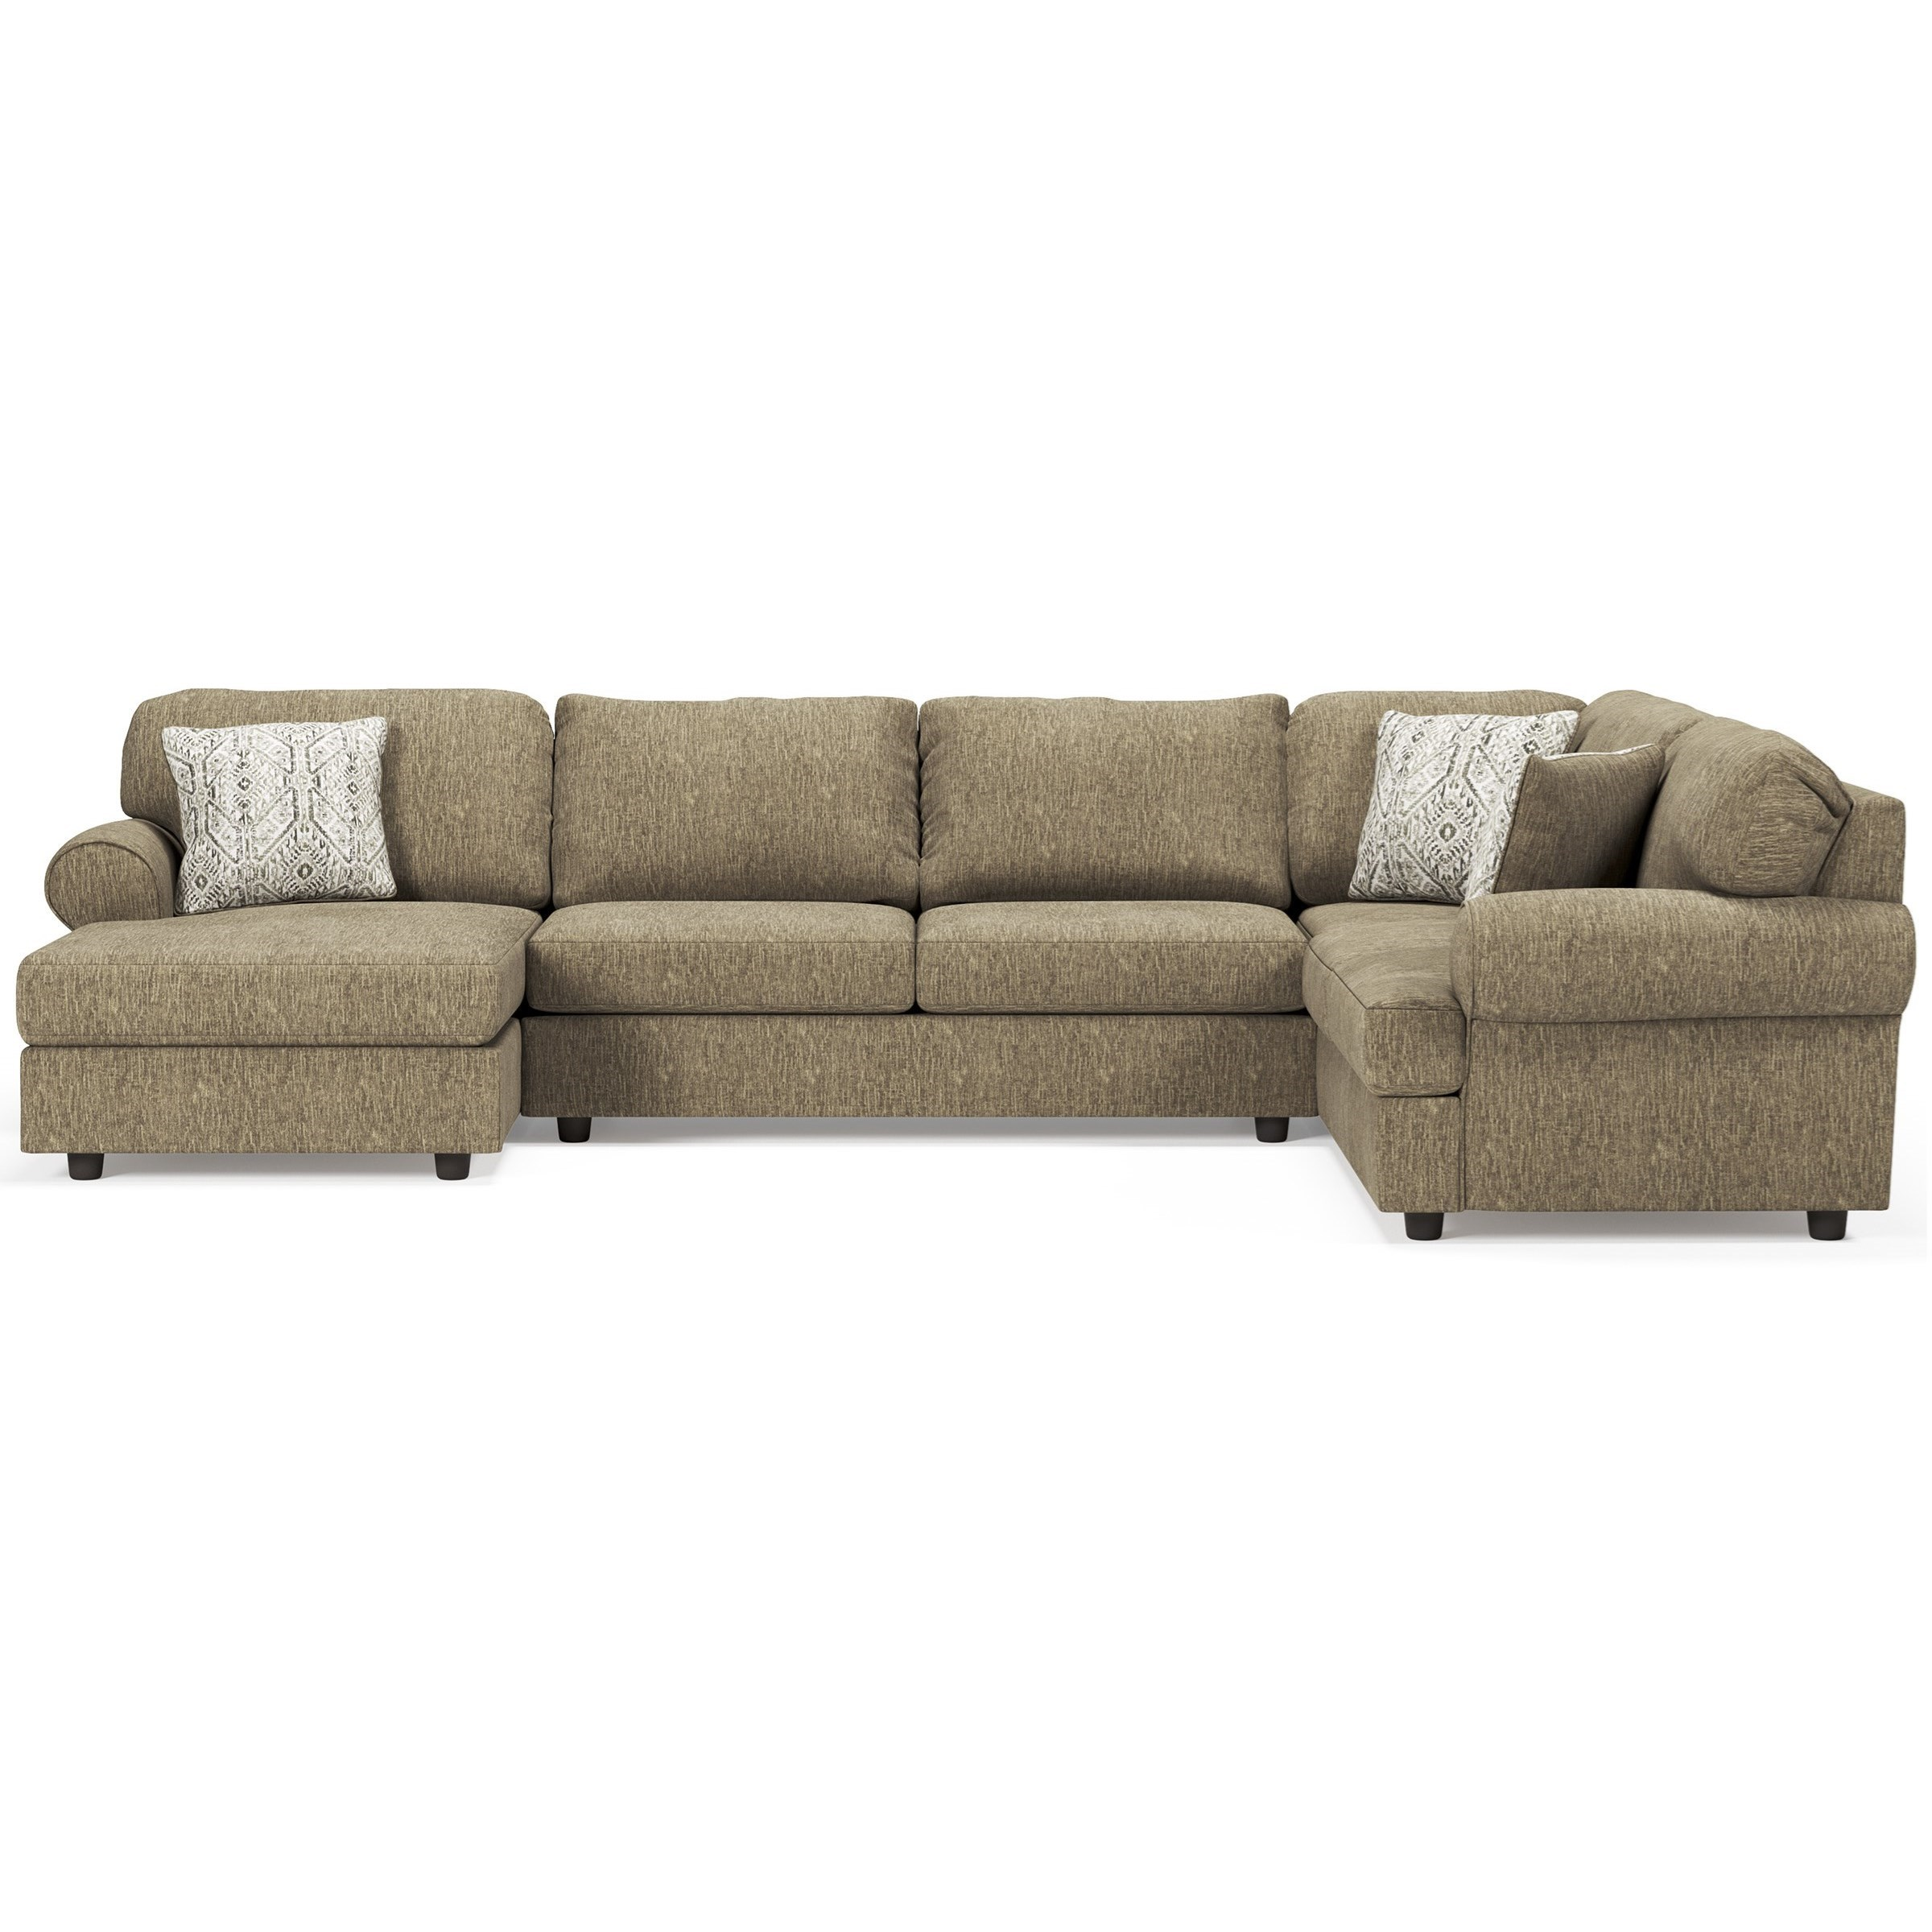 Hoylake 3-Piece Sectional with Chaise by Signature at Walker's Furniture